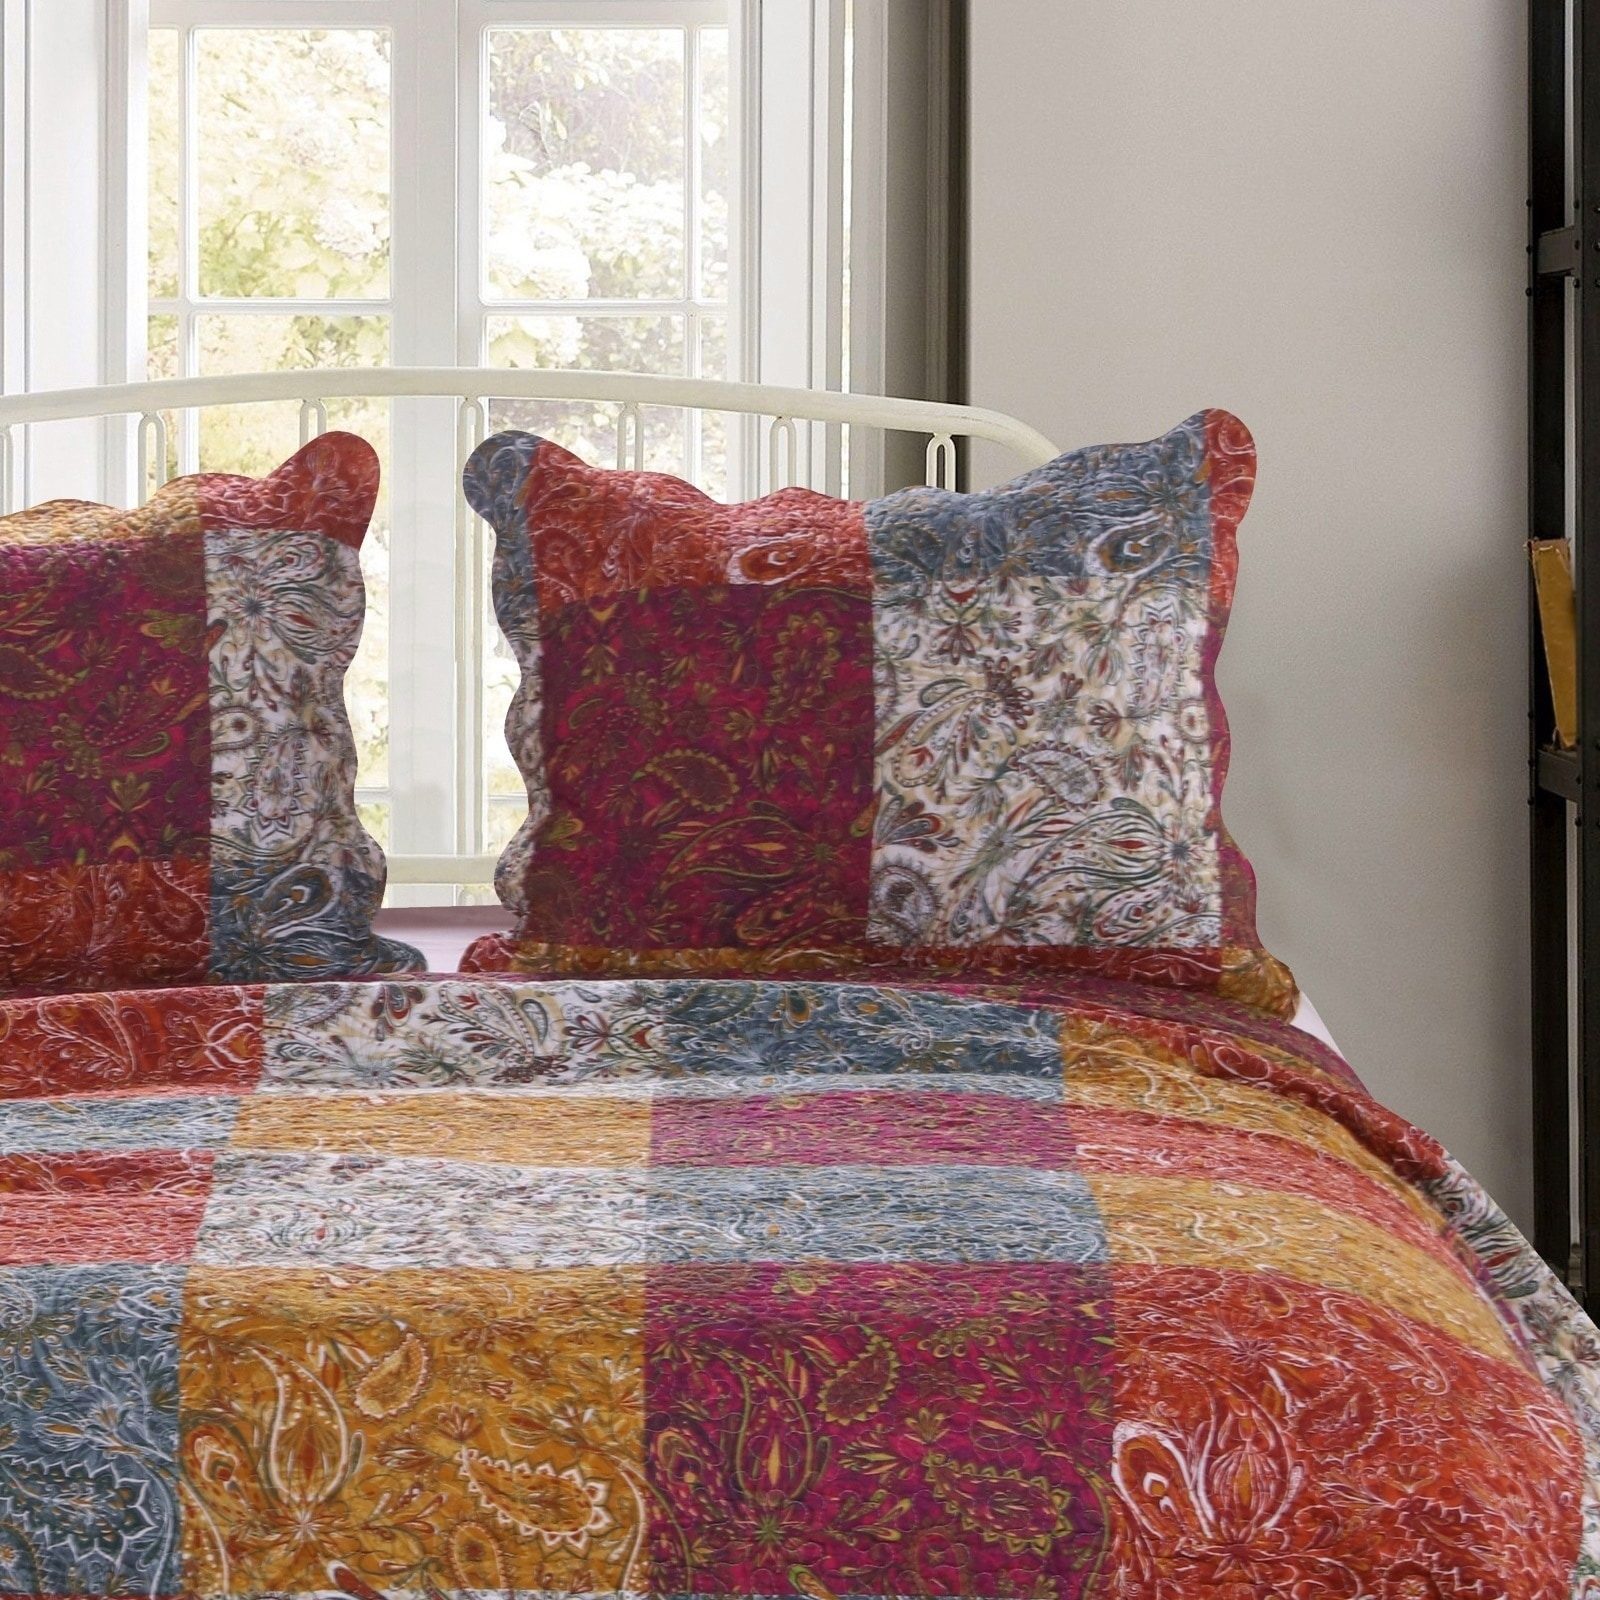 Shop For Porch Den Merritt Spice Color Paisley Quilted Pillow Sham Set Of 2 Get Free Delivery On Everything At Overstock Your Online Bedding Basics Store Get 5 In Rewards With Club O 28819710